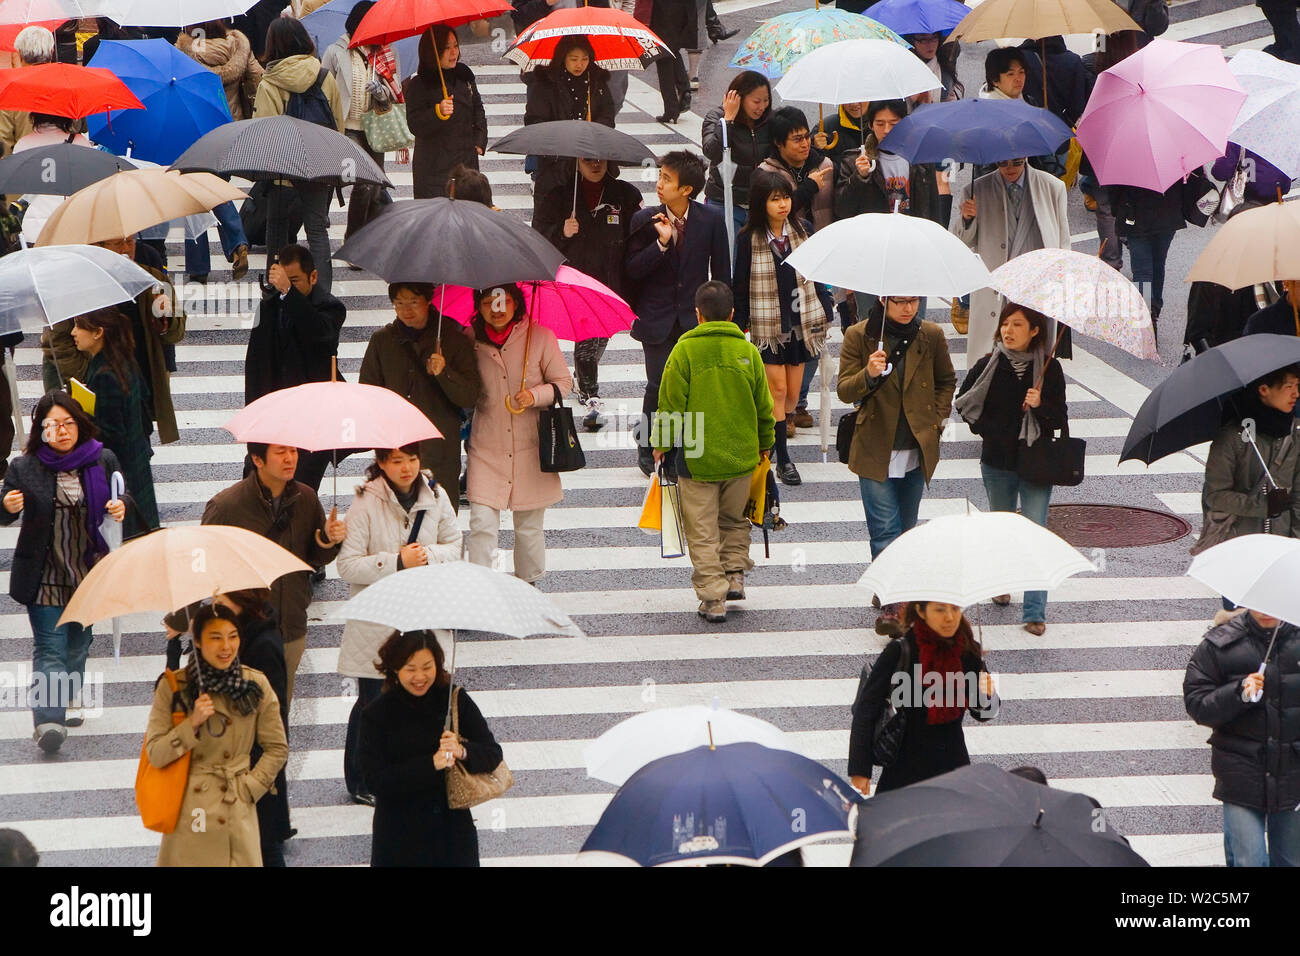 Asia, Japan, Honshu, Tokyo, Shibuya, pedestrians crossing a busy intersection with umbrellas on a rainy day - Stock Image